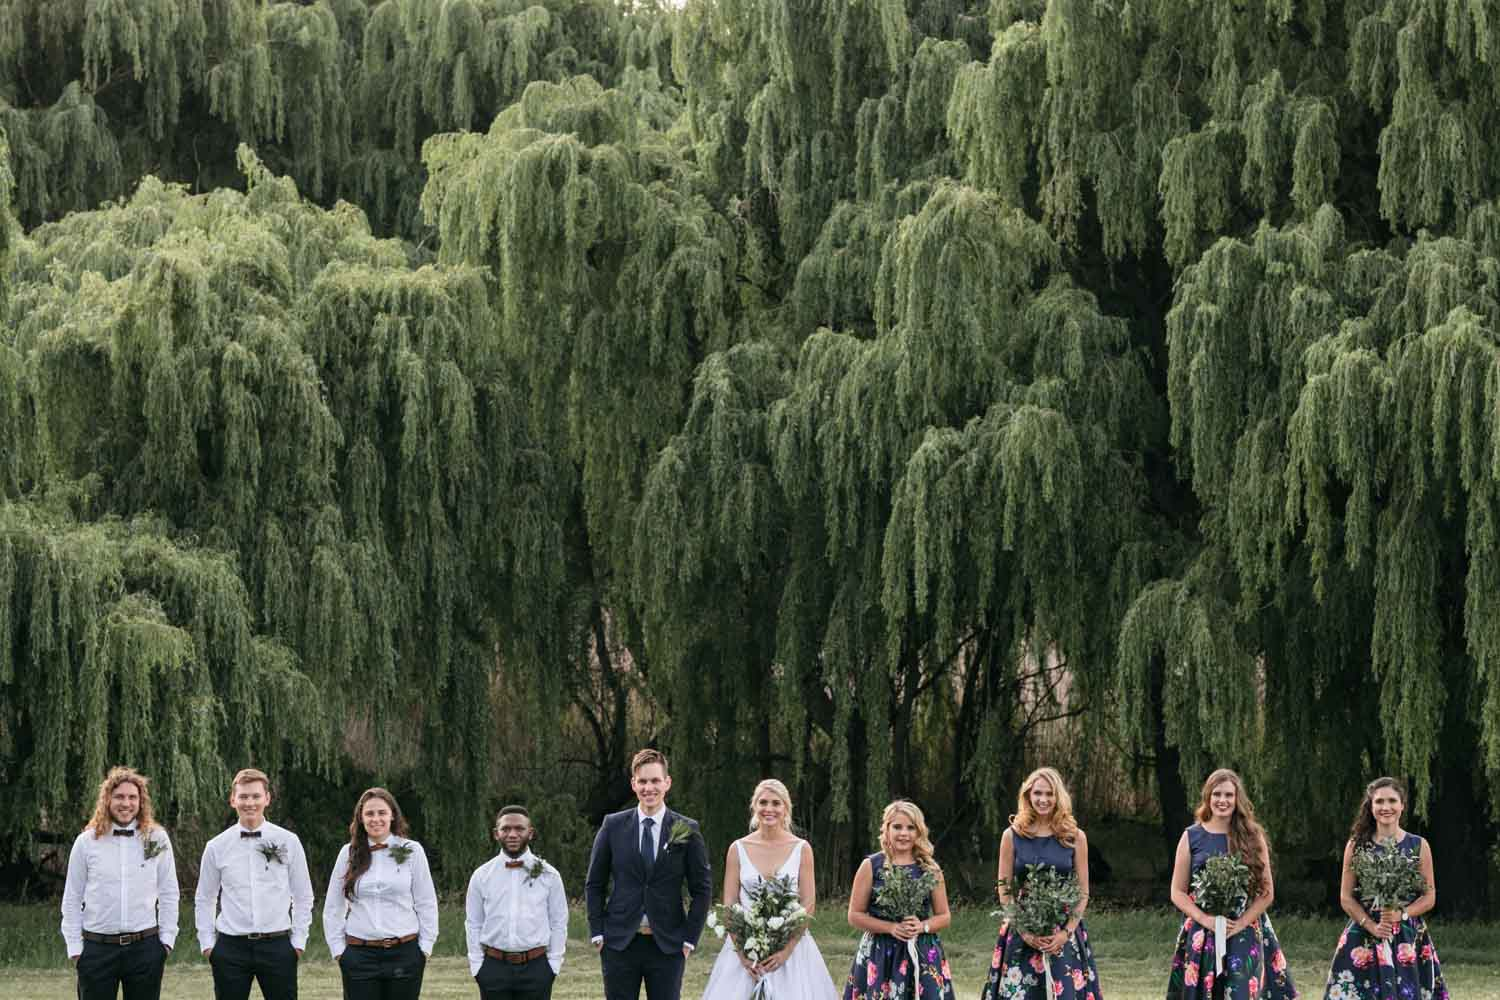 Bridal Party Photo In Front Of Willow Trees In Vancouver